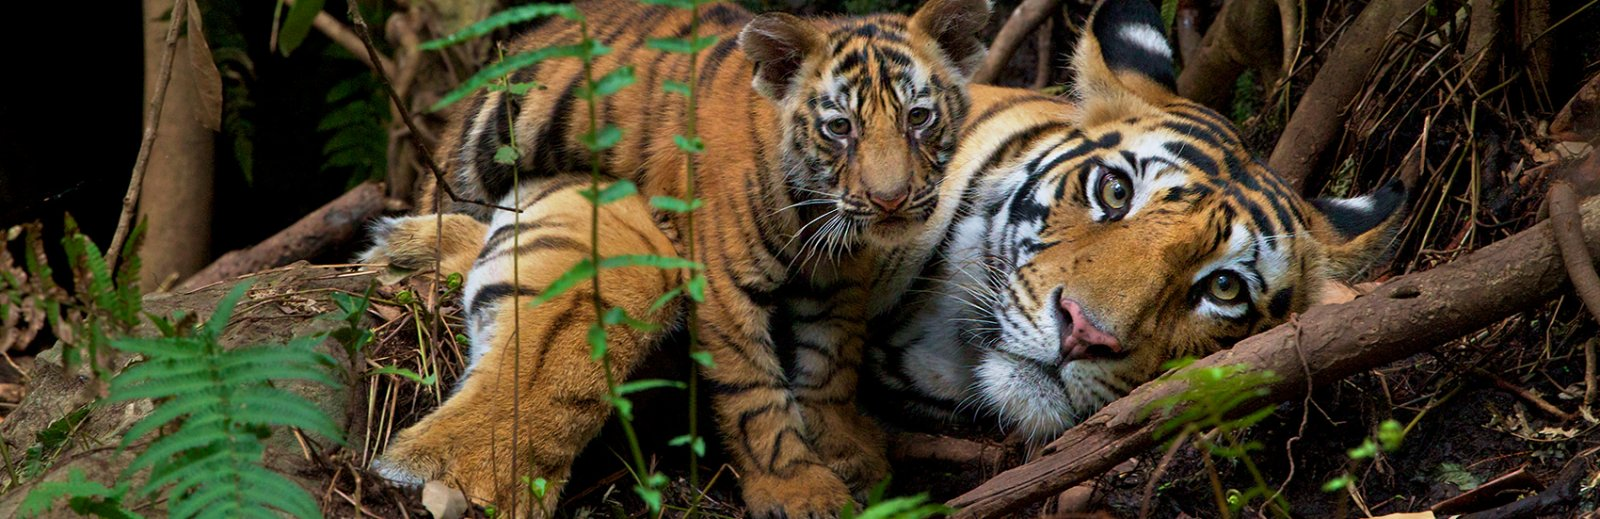 Name:  Tigers-Wide_1700x550.jpg